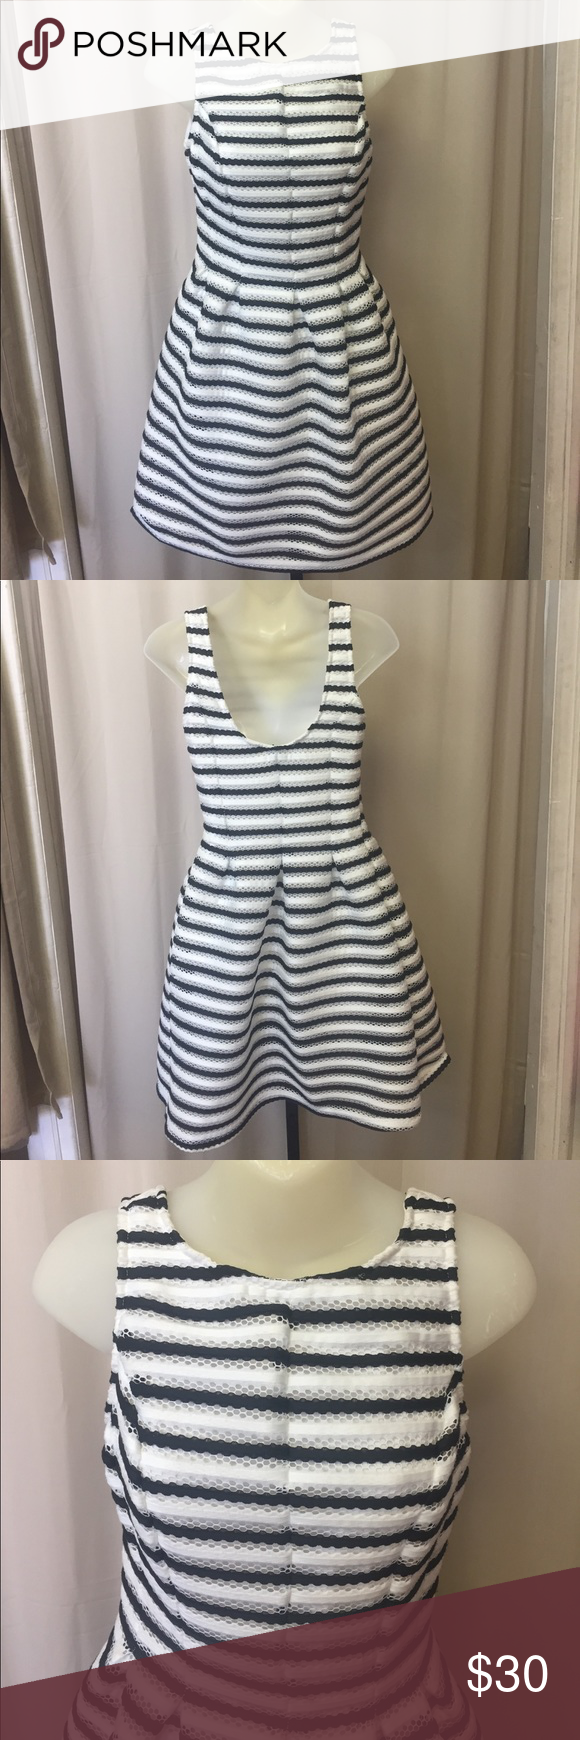 Black and white striped dress Black and white striped dress Mystic Dresses